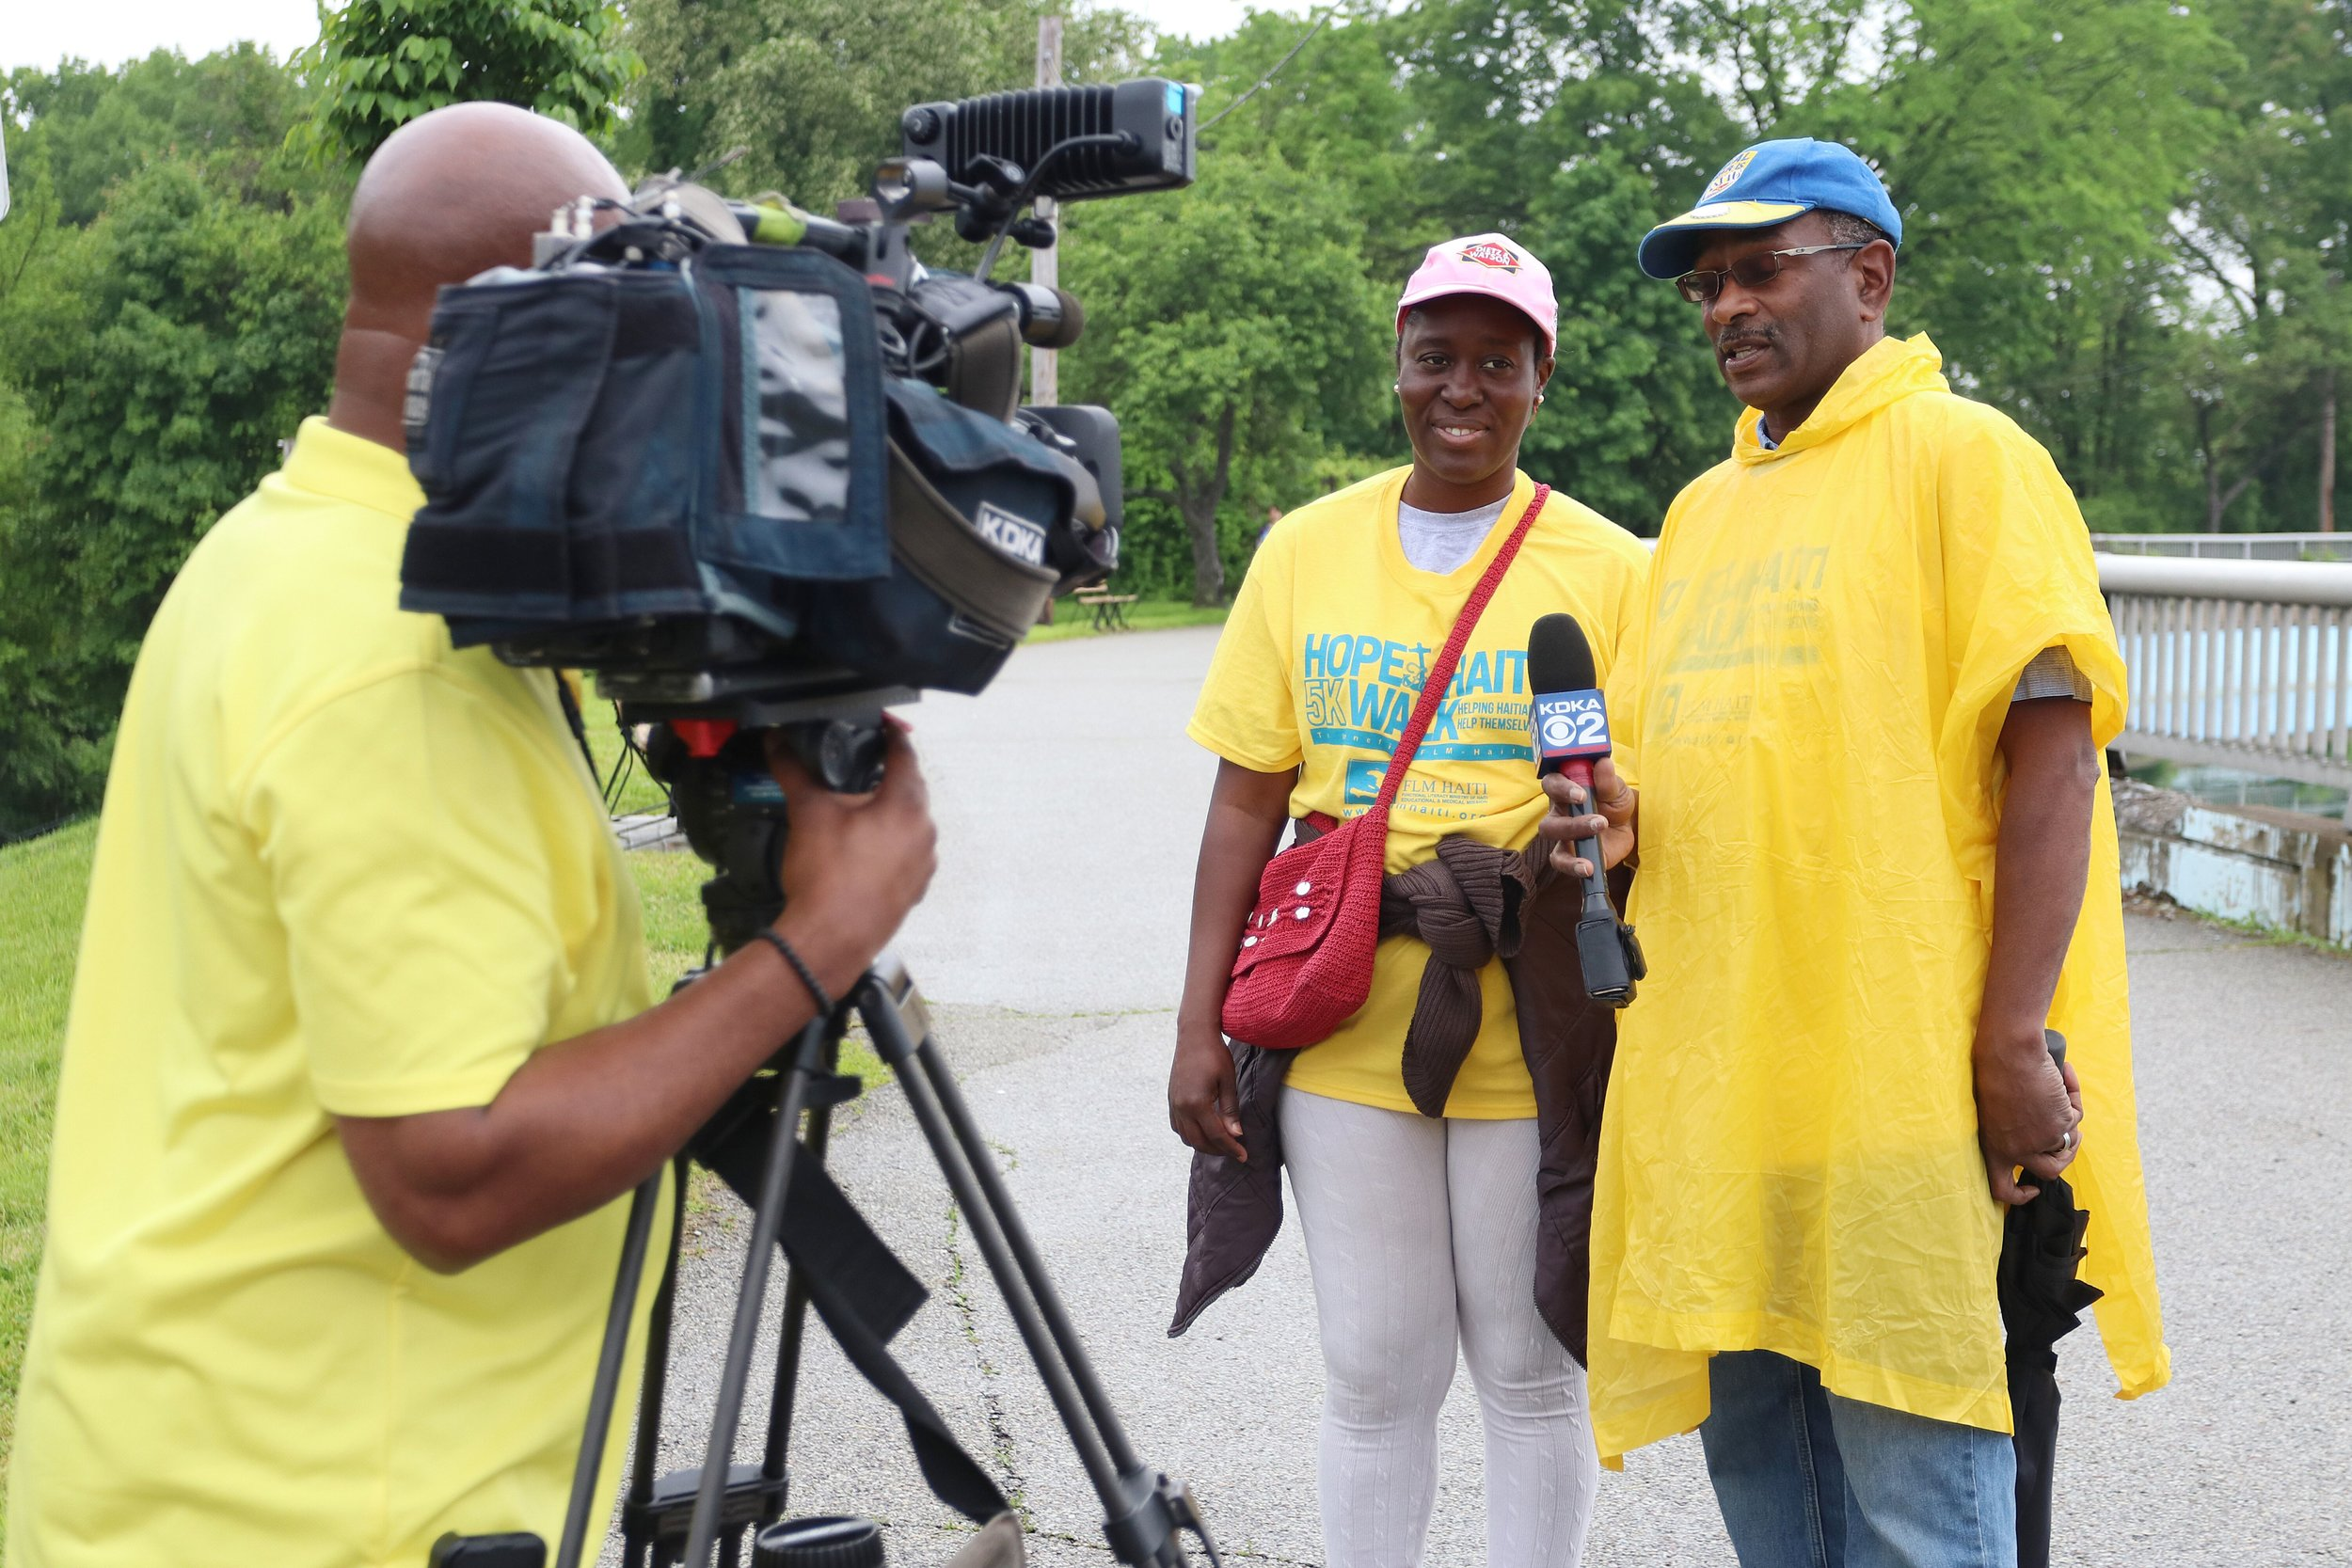 KDKA doing interviews at the walk -FLM.jpeg